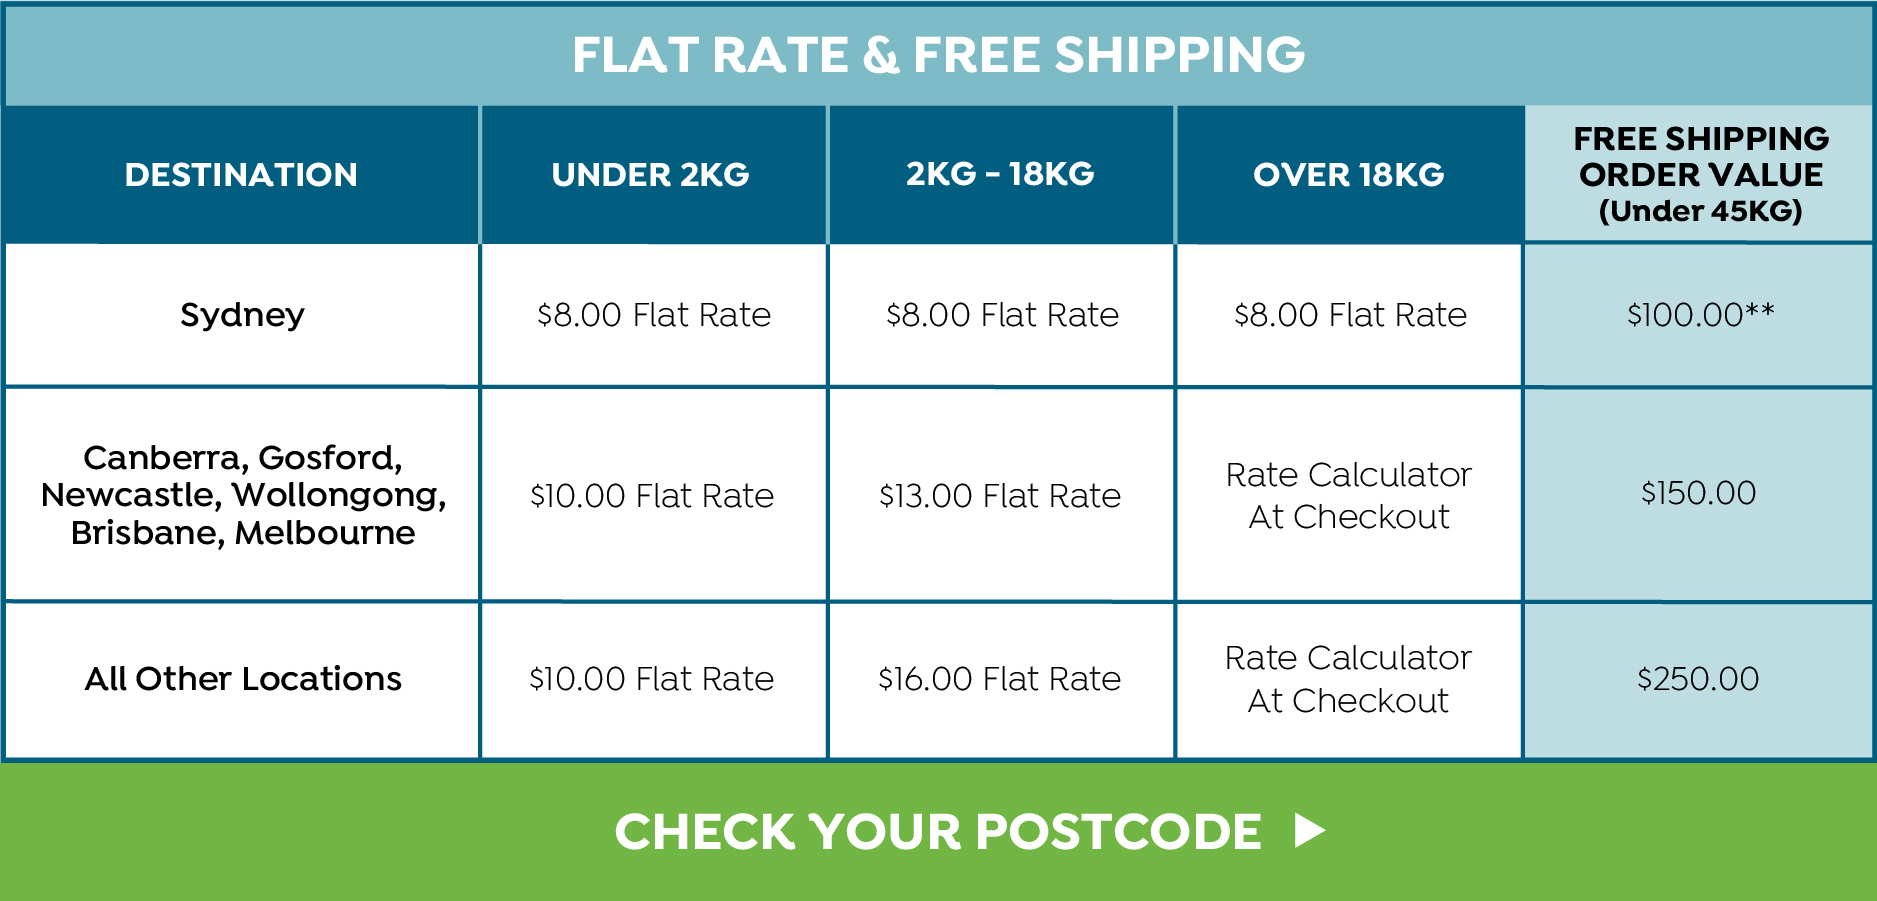 shipping-graphics-flat-rate-and-free-shipping.jpg